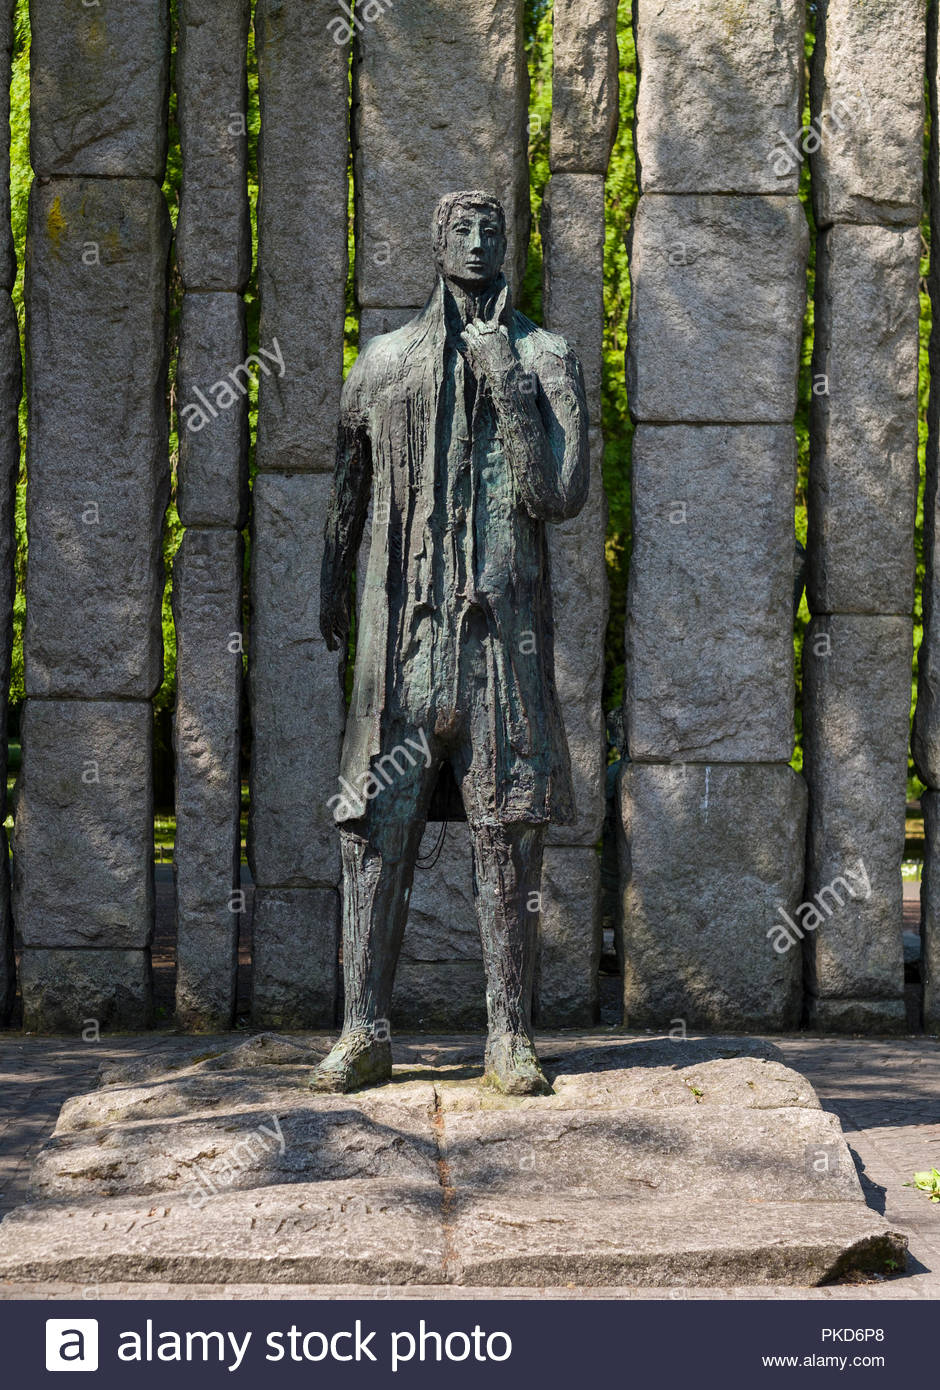 Wolfe Tone Sculpture by Edward Delaney, Saint Stephen's Green Park, Dublin, Leinster, Ireland - Stock Image